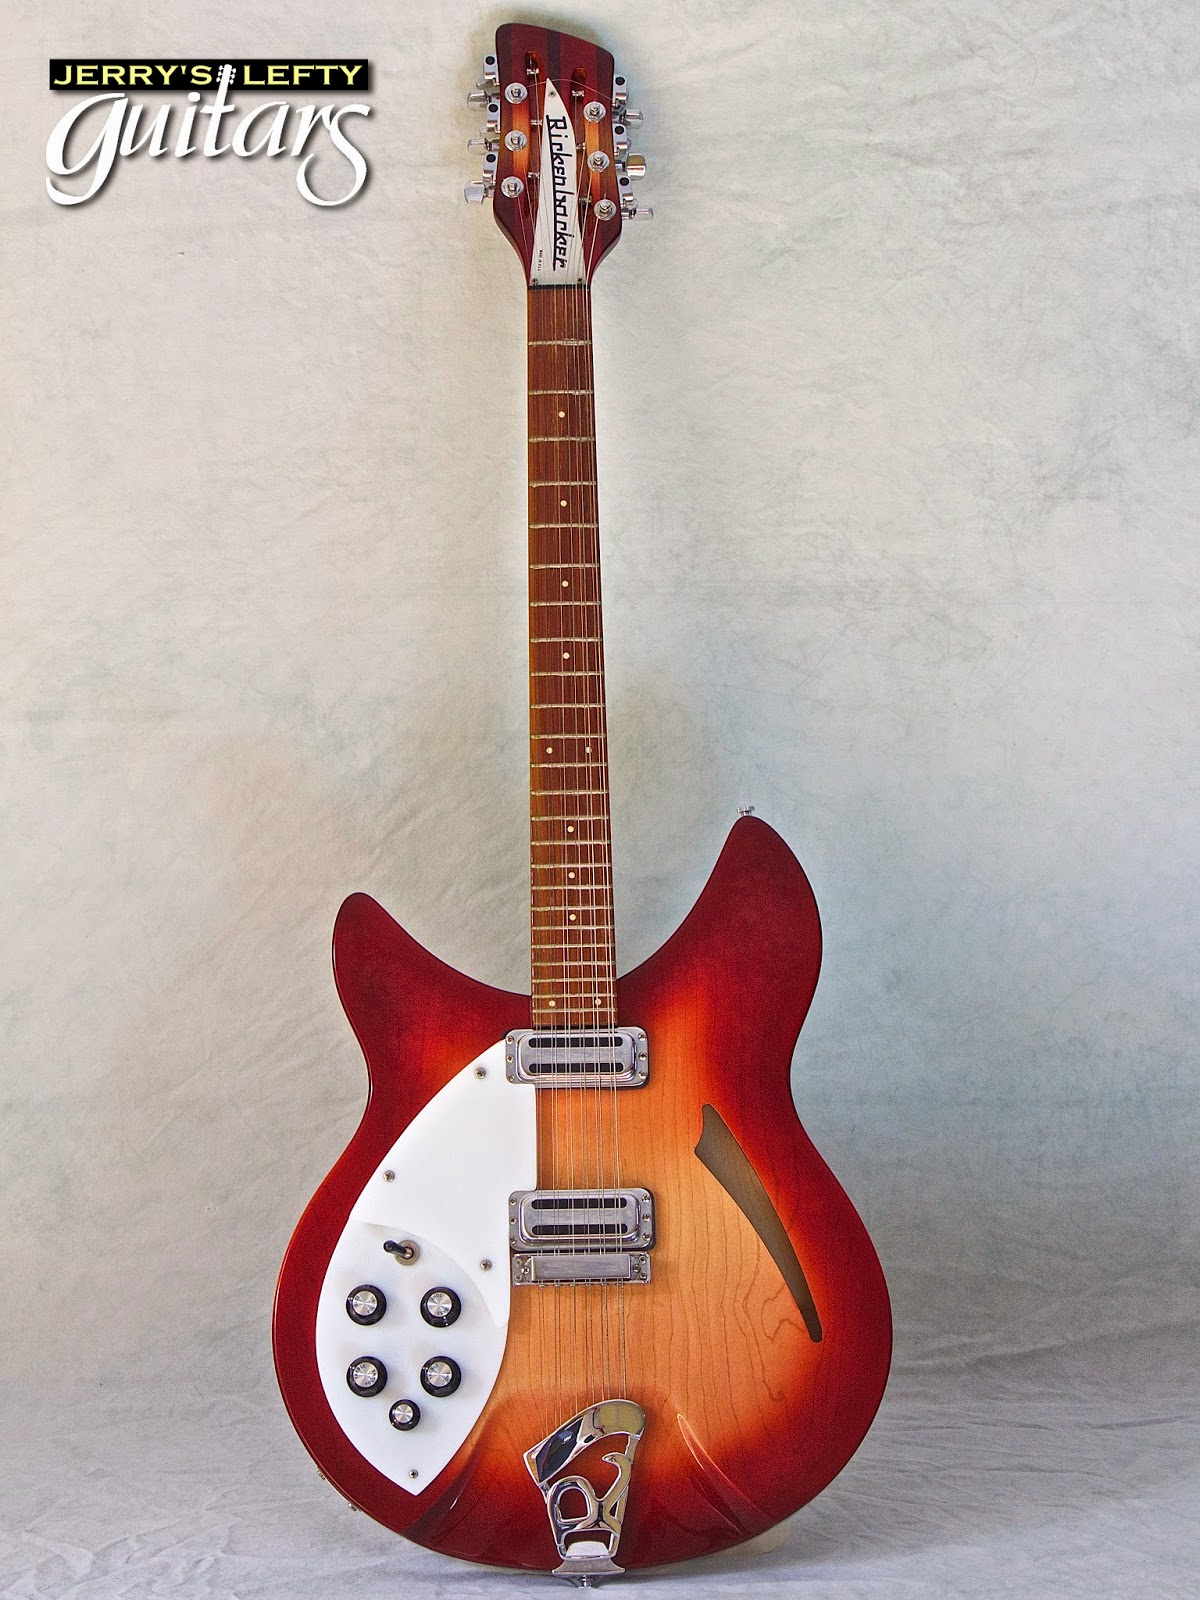 jerry 39 s lefty guitars newest guitar arrivals updated weekly 1991 rickenbacker 330 12 fireglow. Black Bedroom Furniture Sets. Home Design Ideas